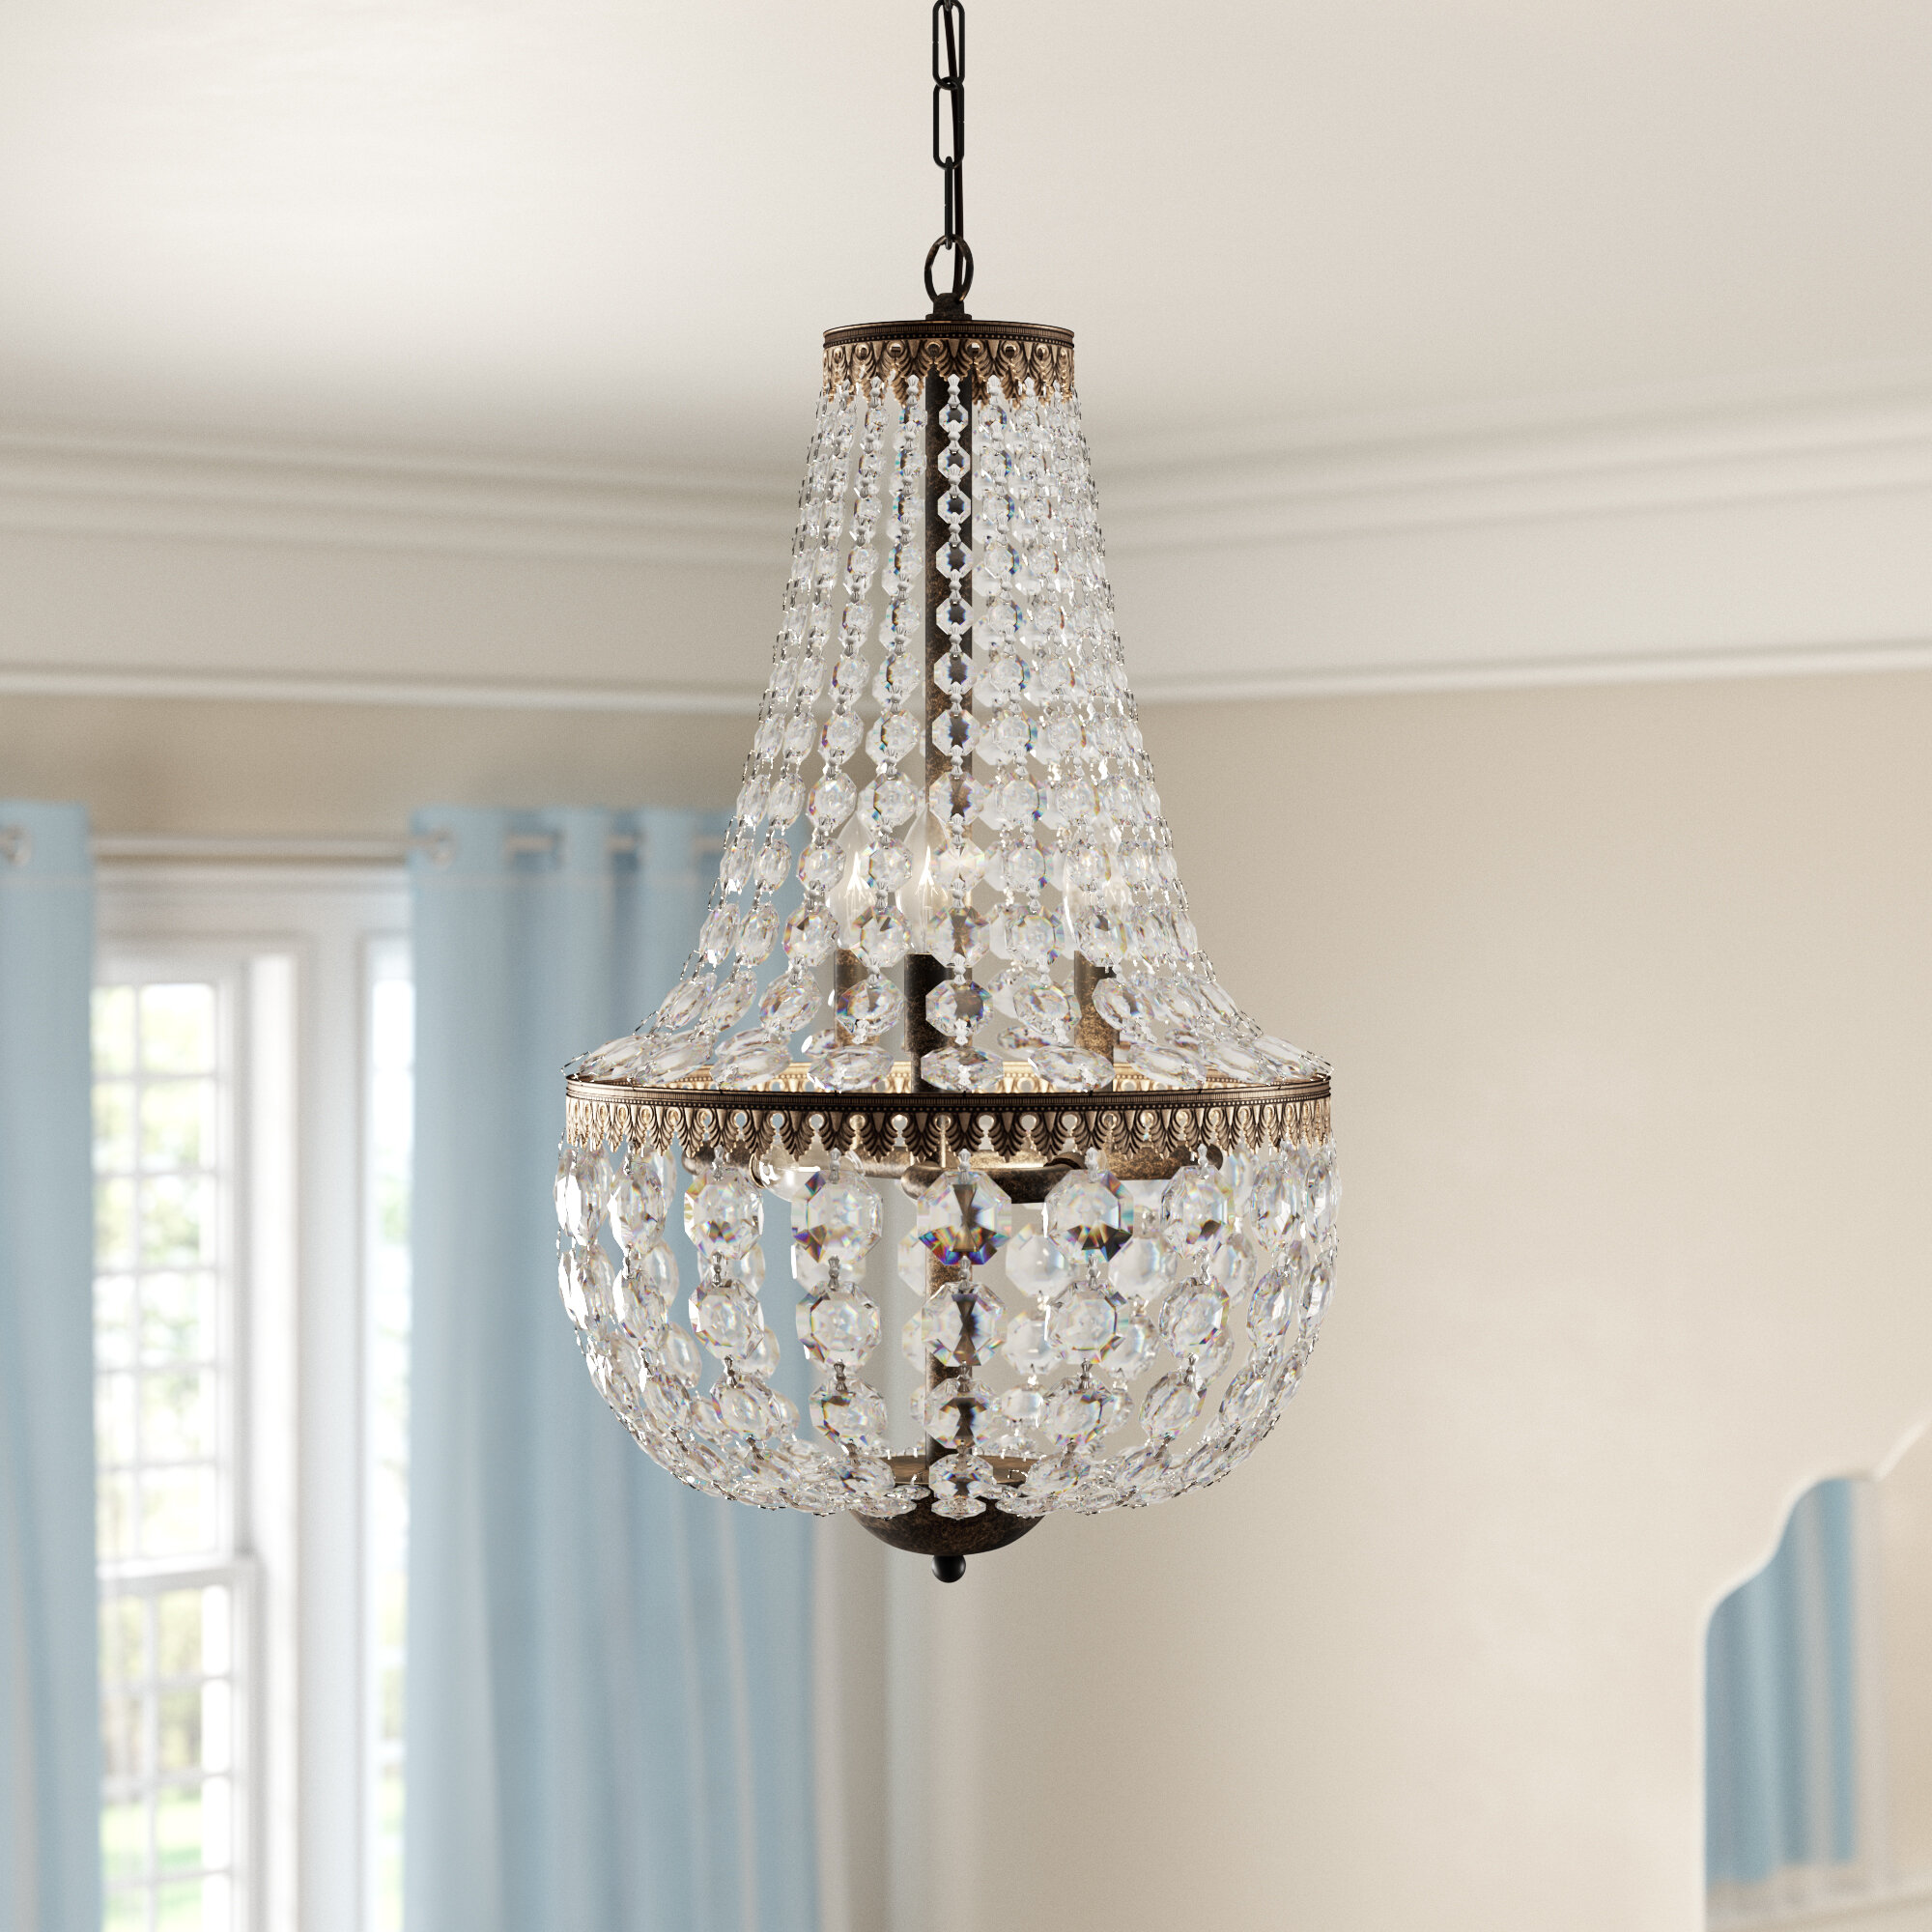 House Of Hampton Fraser 6 Light Unique Statement Empire Chandelier With Crystal Accents Reviews Wayfair